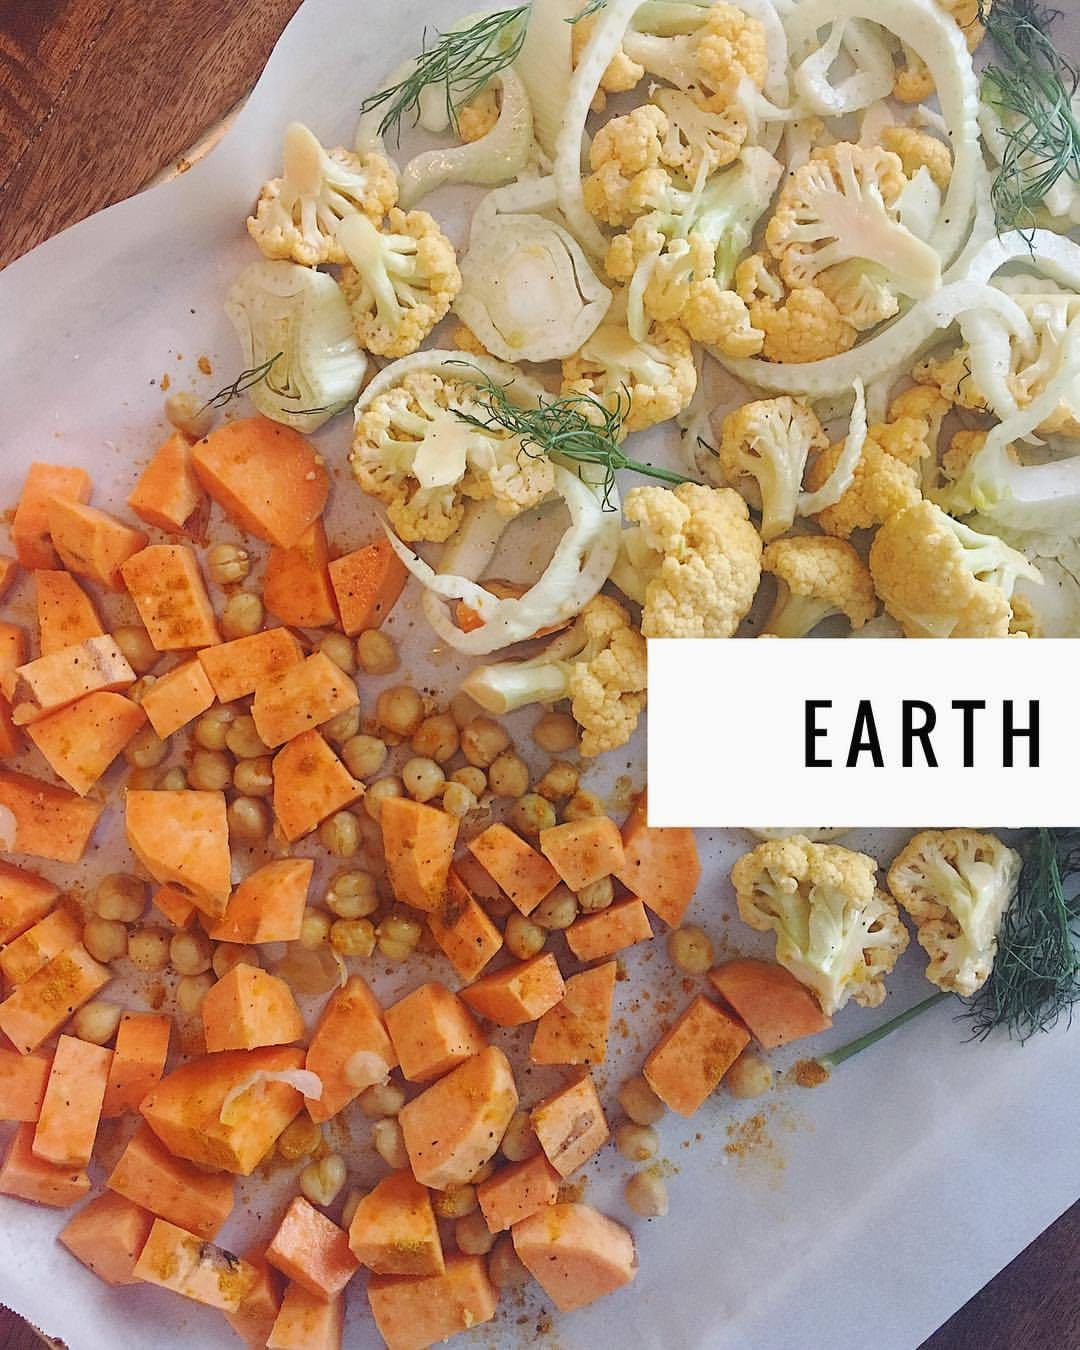 I've been in awe of 5 Element food therapy & Chinese medicine food dietetics for over 10 years. 5 Elements (often called 5 Phases) are EARTH / METAL / WATER / WOOD / FIRE. The Qi of the earth element flourishes in Indian Summer, those golden moments of fullness before the waning of the light. The earth color is yellow, like the sun, the ripened crops, and the root vegetables. Bringing in some much needed grounding energy from the Earth element by making a hash tonight with these golden veggies that will mix with a grass-fed ground beef and kale scramble. ☀️🌻🌾🥕.   .  .  .  #nourishyourself #healingarts #foodismedicine #foodtherapy #chinesemedicine #wholefoods #holisticnutrition #5elements #tcm #earthday #earthelement #onthetable #liveauthentic #huffposttaste #eatingwell #medicinekitchen #healthyeating #naturalhealth #forkyeah #wellness #bewell #orientalmedicine #goldenhour #suppertime